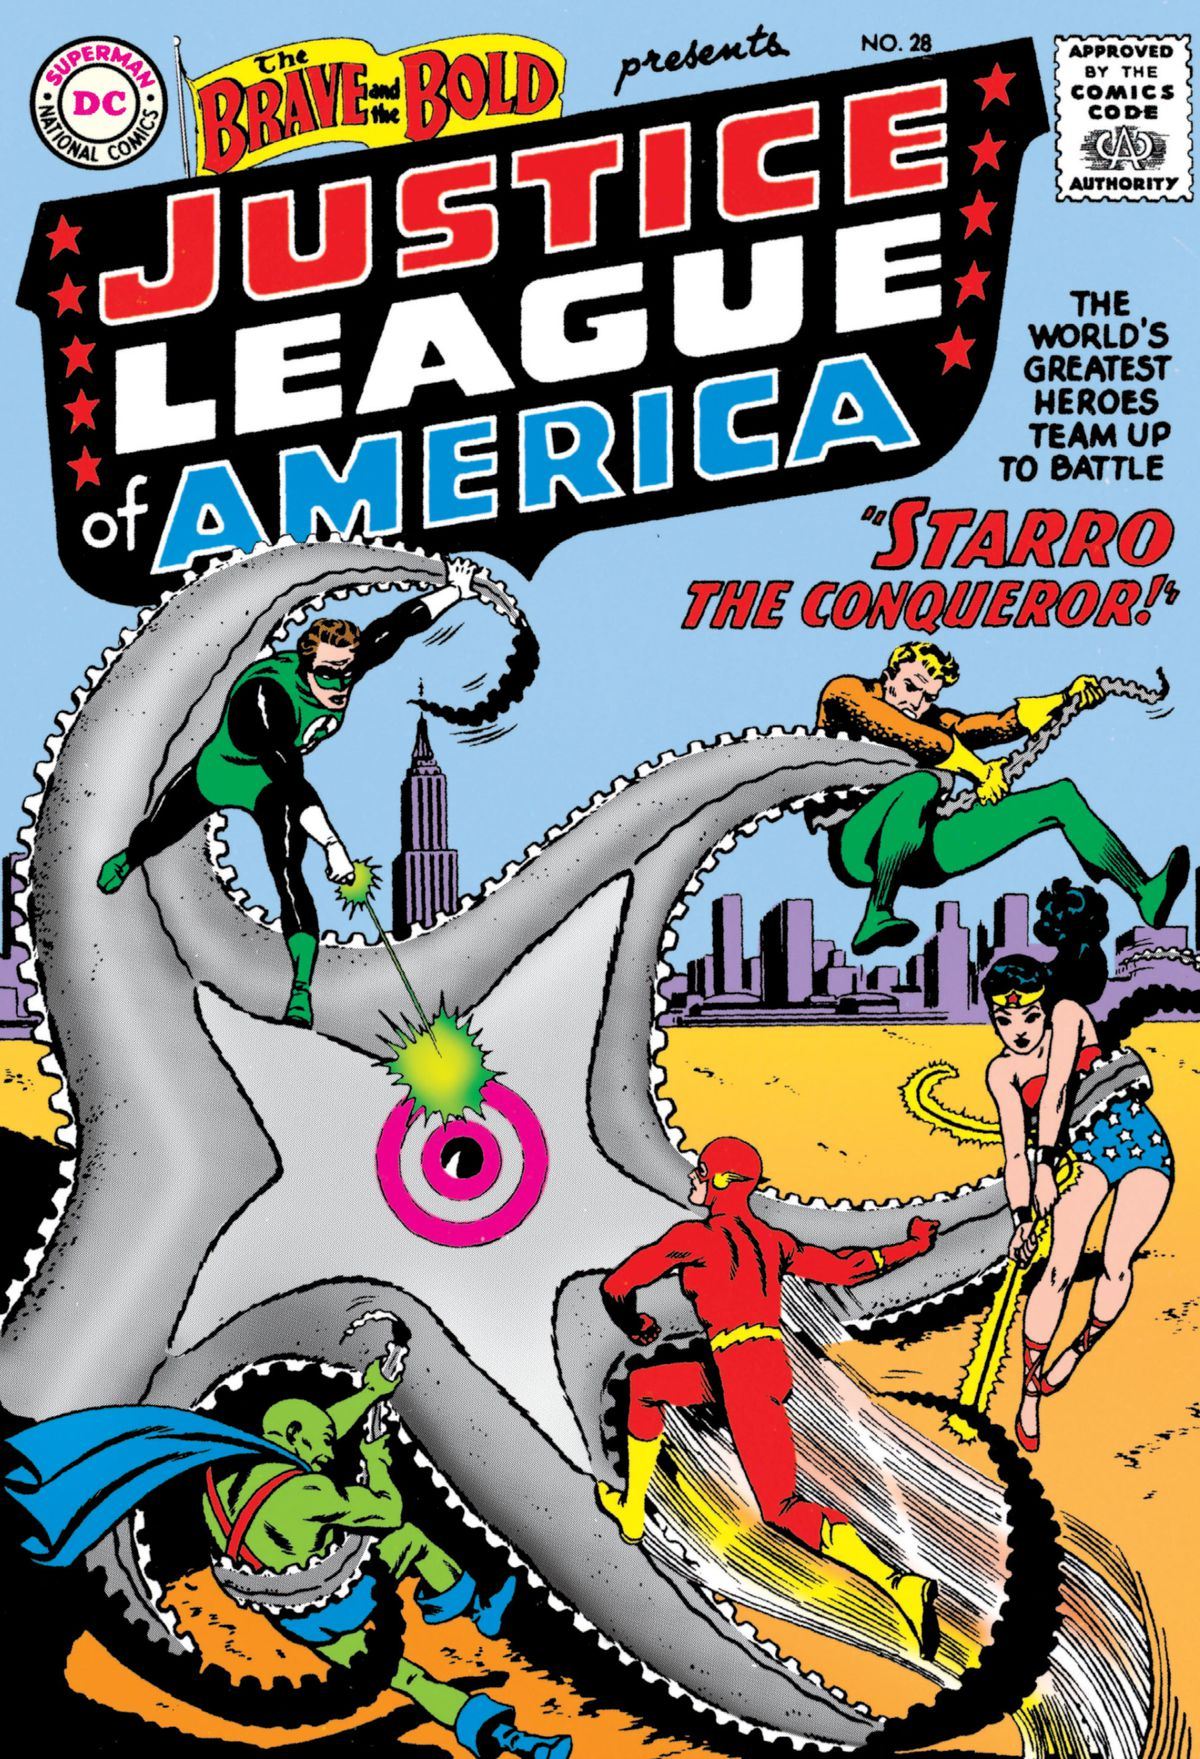 Green Lantern, Aquaman, Wonder Woman, the Martian Manhunter, and the Flash battle Starro, a giant starfish with a central eye on the cover of The Brave and the Bold #28 (1960).